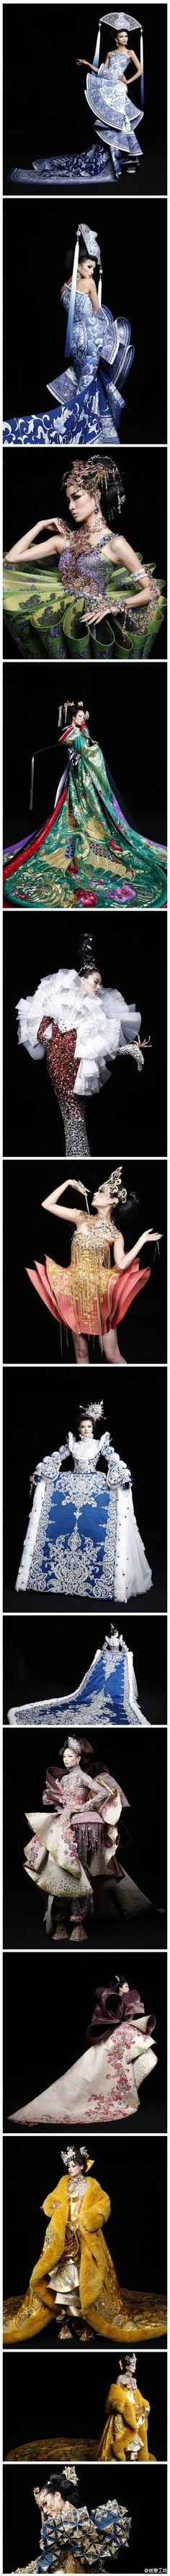 The absolutely exquisite work of Guo Pei